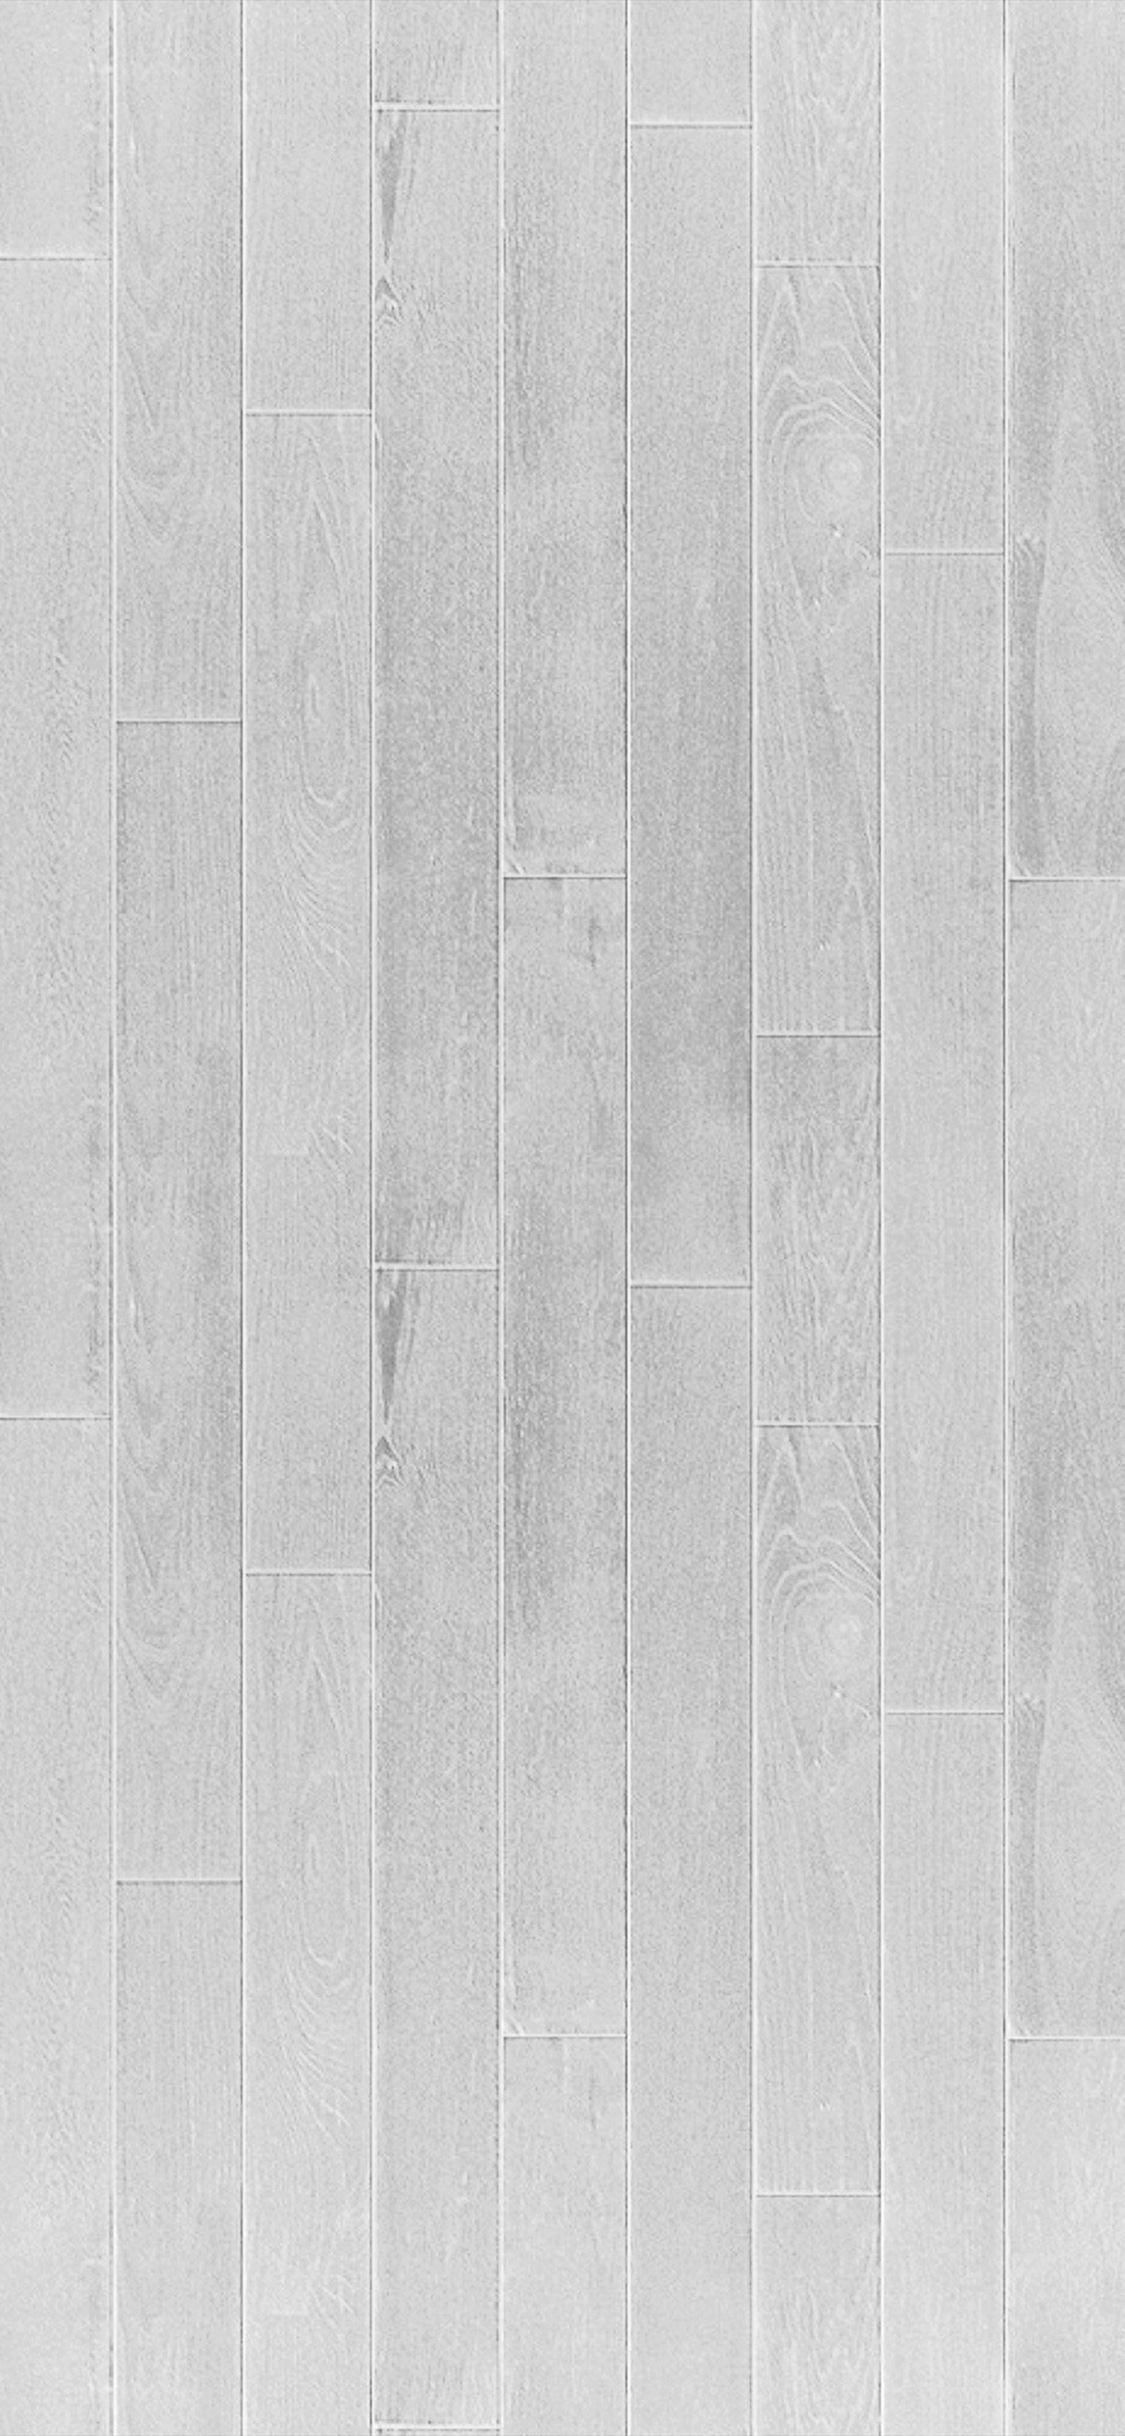 iPhonexpapers.com-Apple-iPhone-wallpaper-vt91-texture-wood-white-nature-pattern